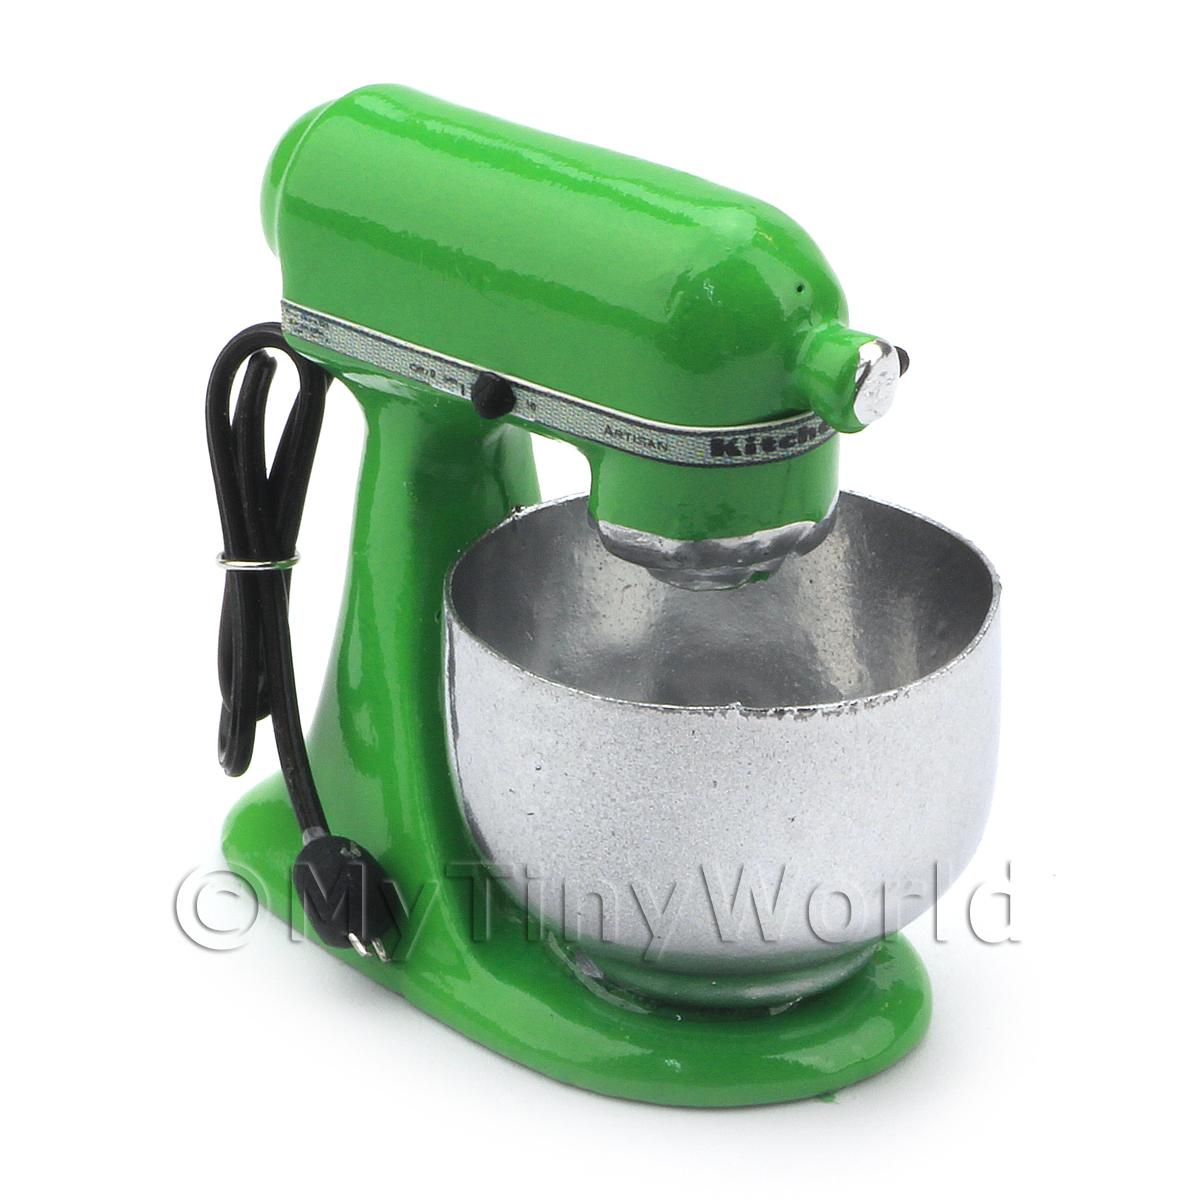 Green Dolls House Miniature Old Style Batter / Dough Mixer